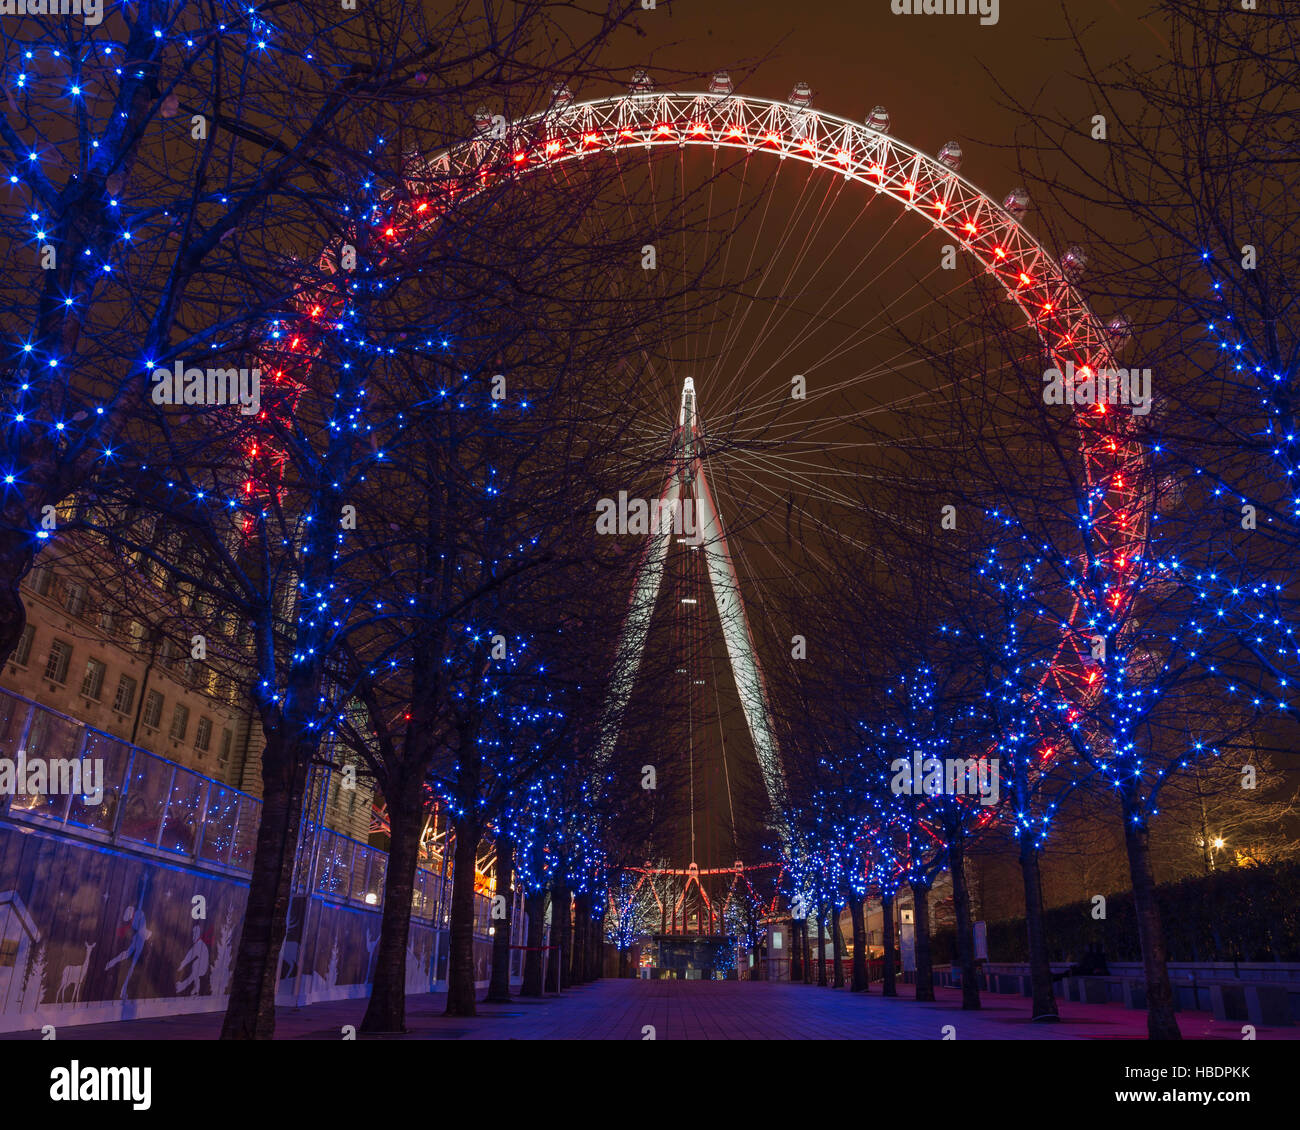 The London Eye looking positively festive. - Stock Image